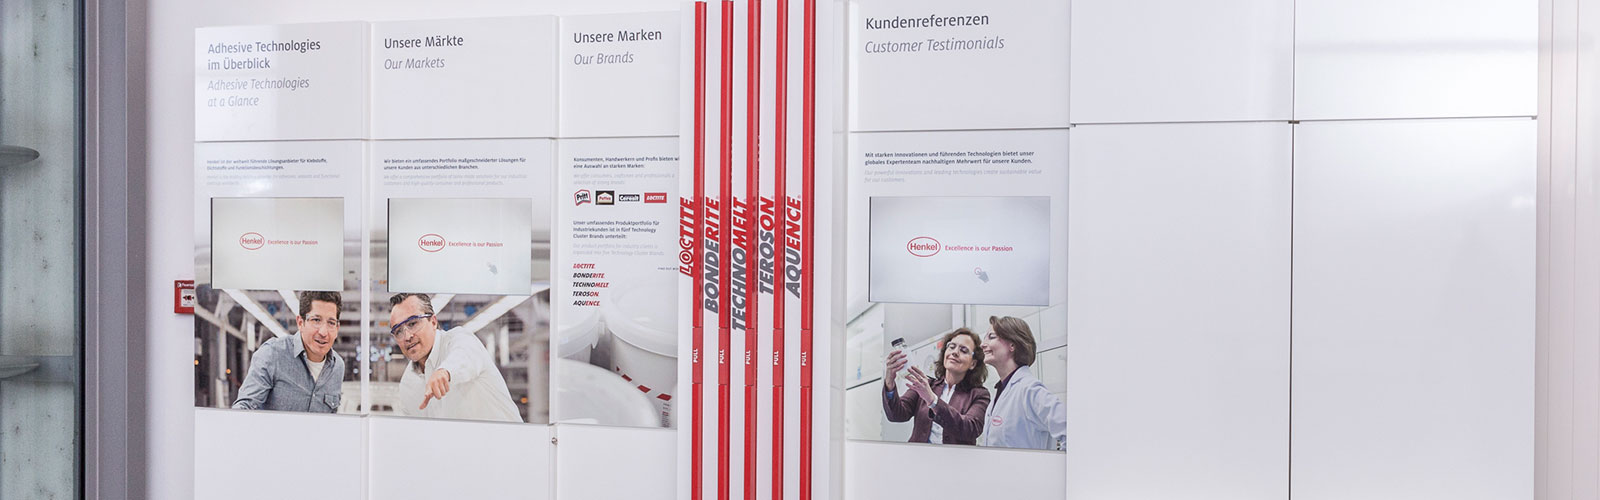 Braunwagner customer journey Henkel adhesives 2016